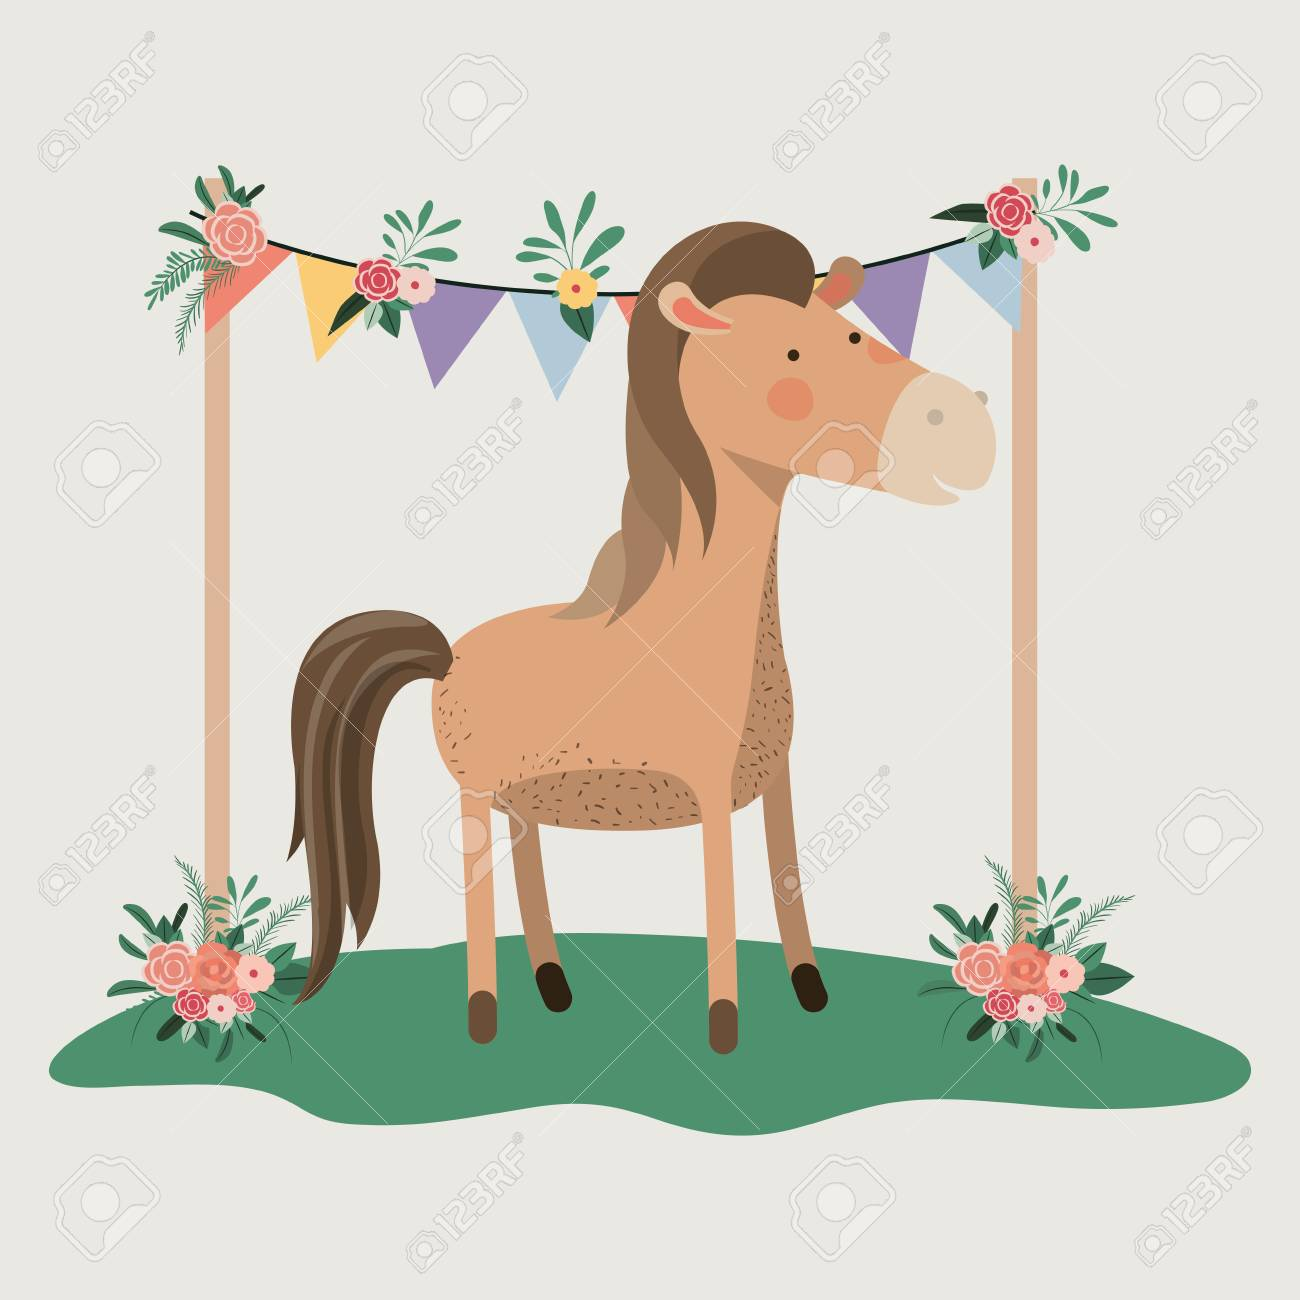 Baby Shower Card With Cute Horse Vector Illustration Design Royalty Free Cliparts Vectors And Stock Illustration Image 112238351